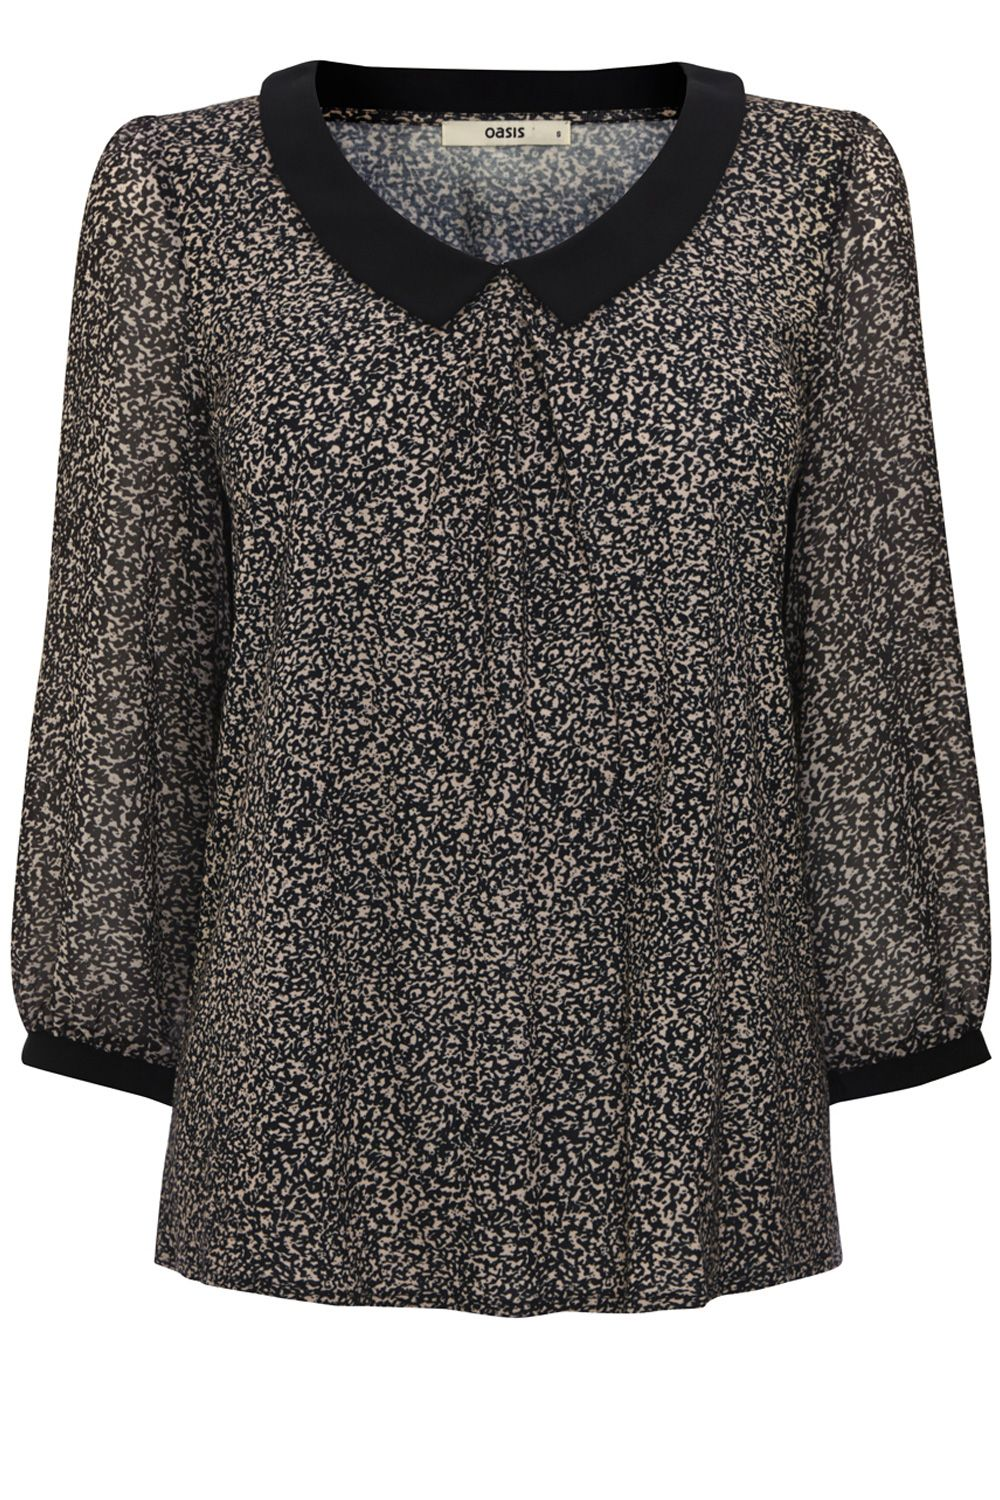 Animal print collar blouse